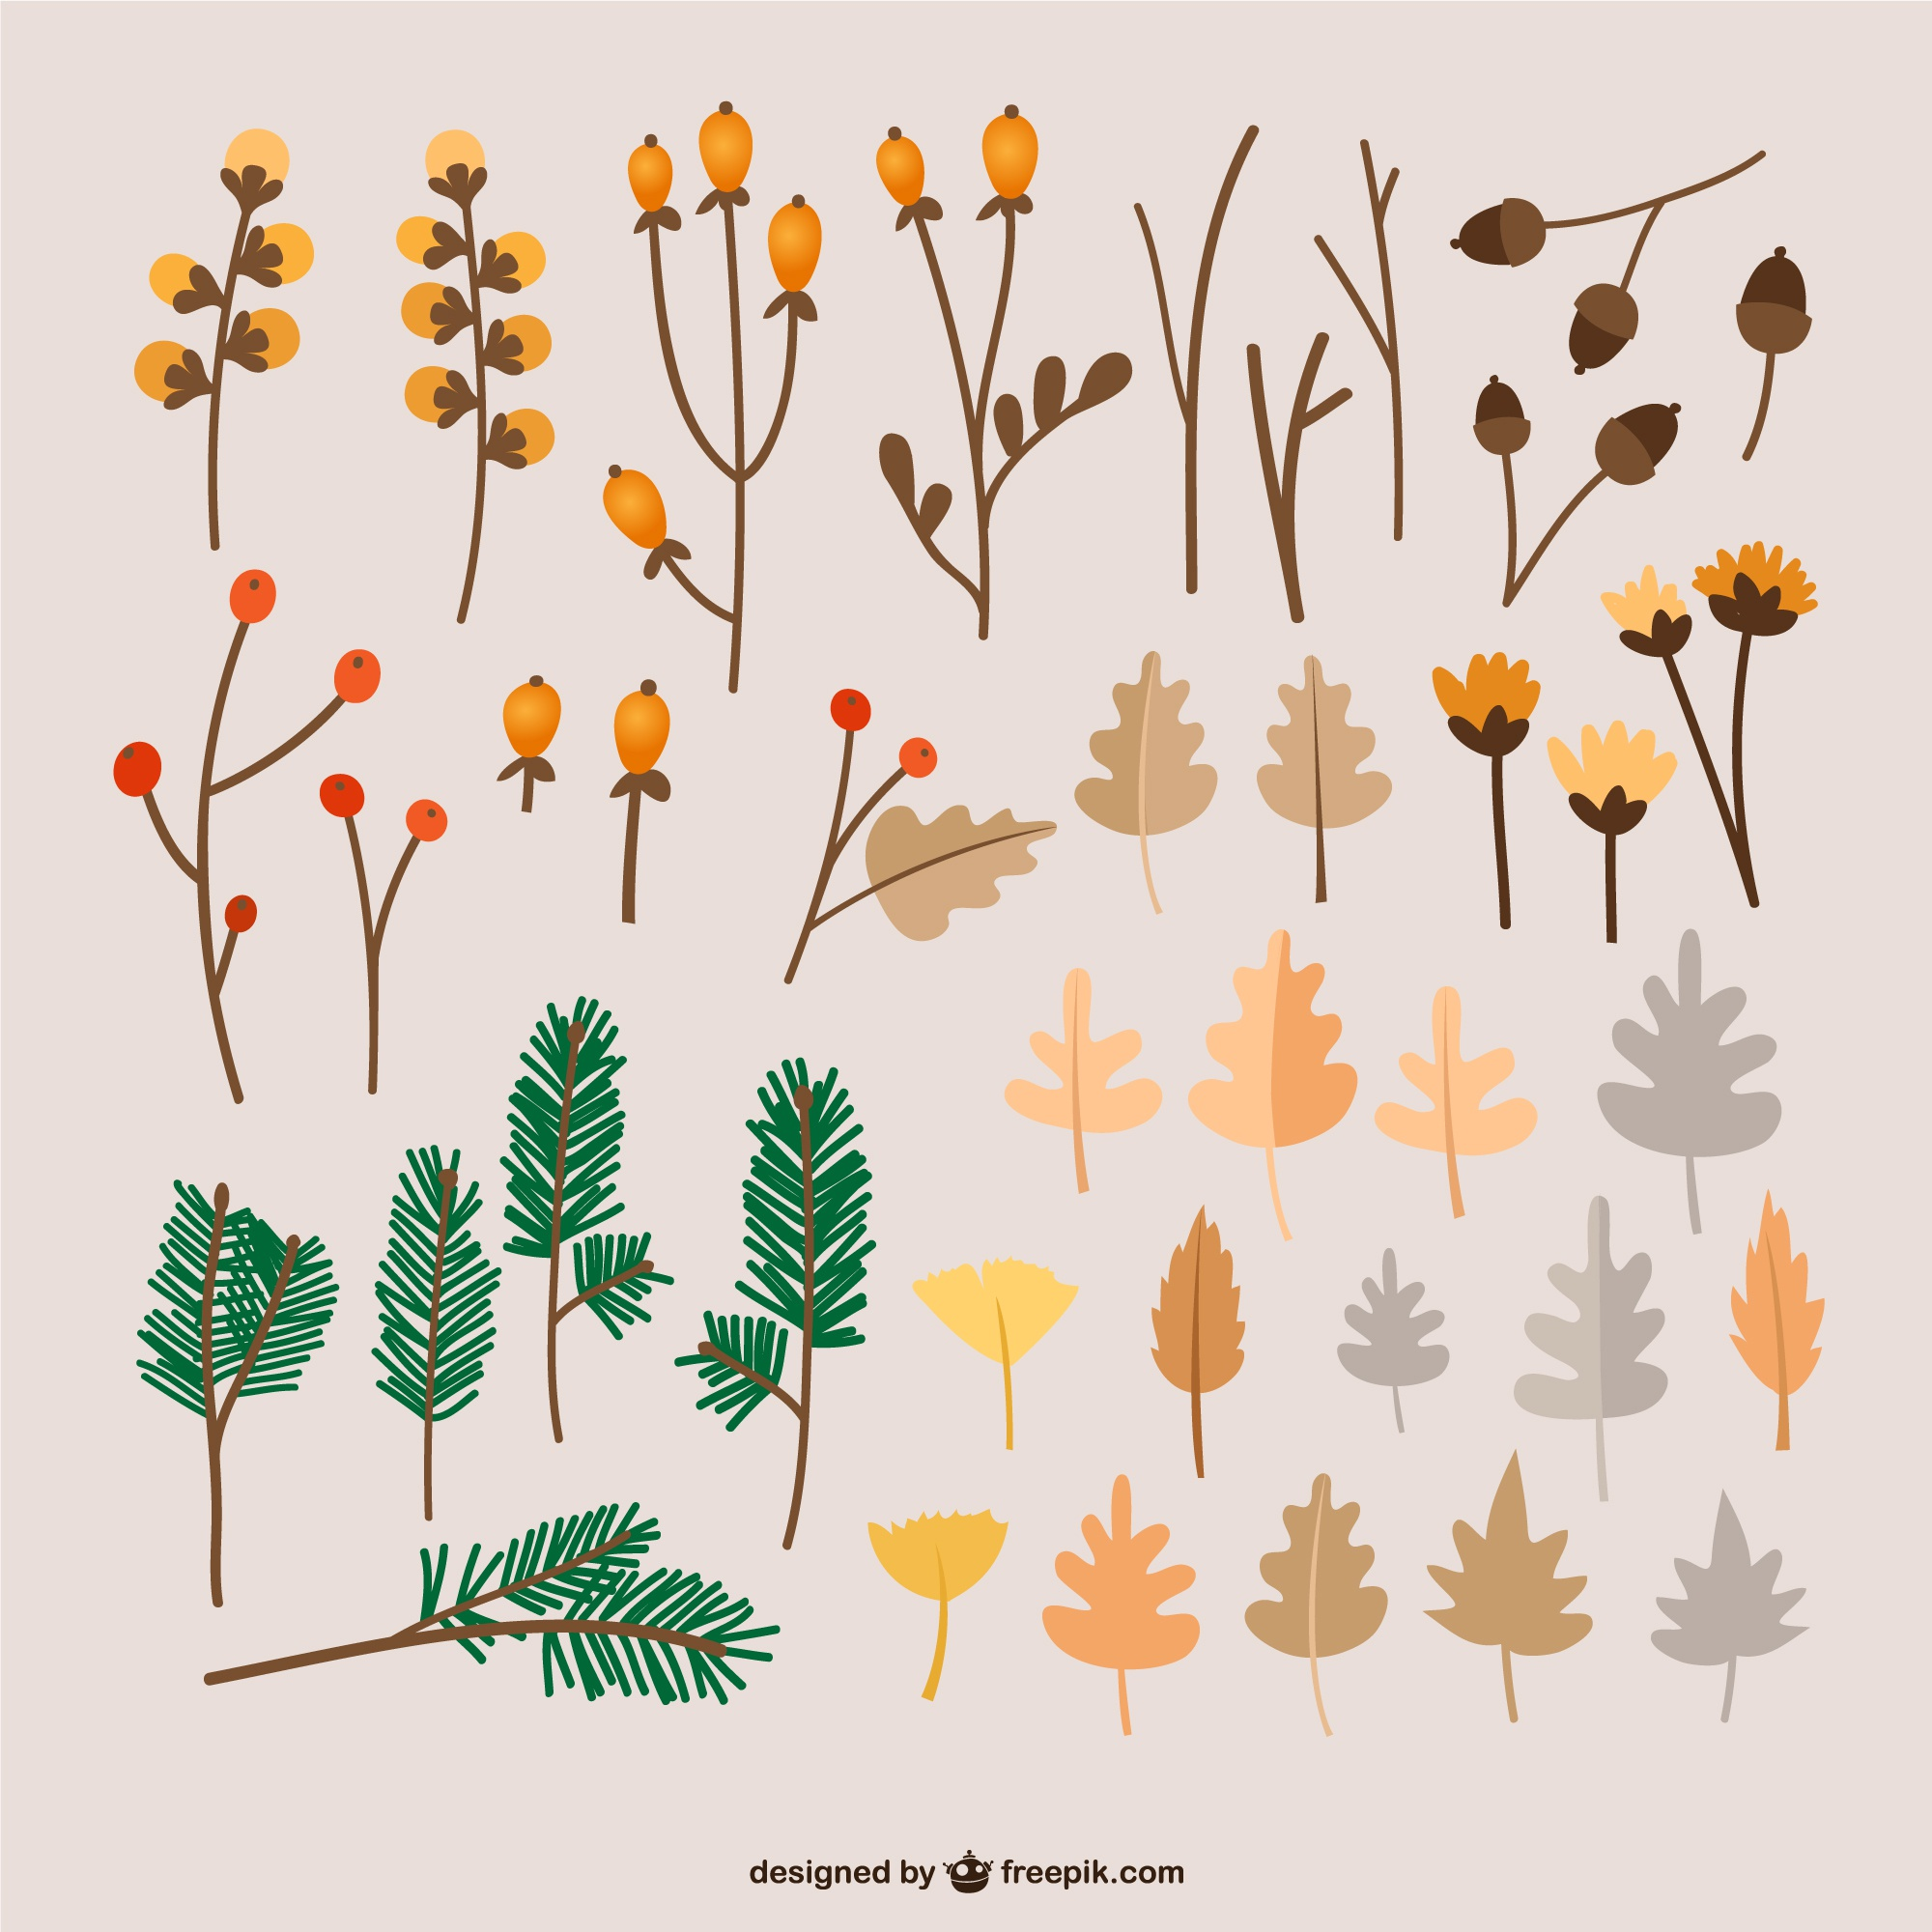 Autumn leaves illustrations